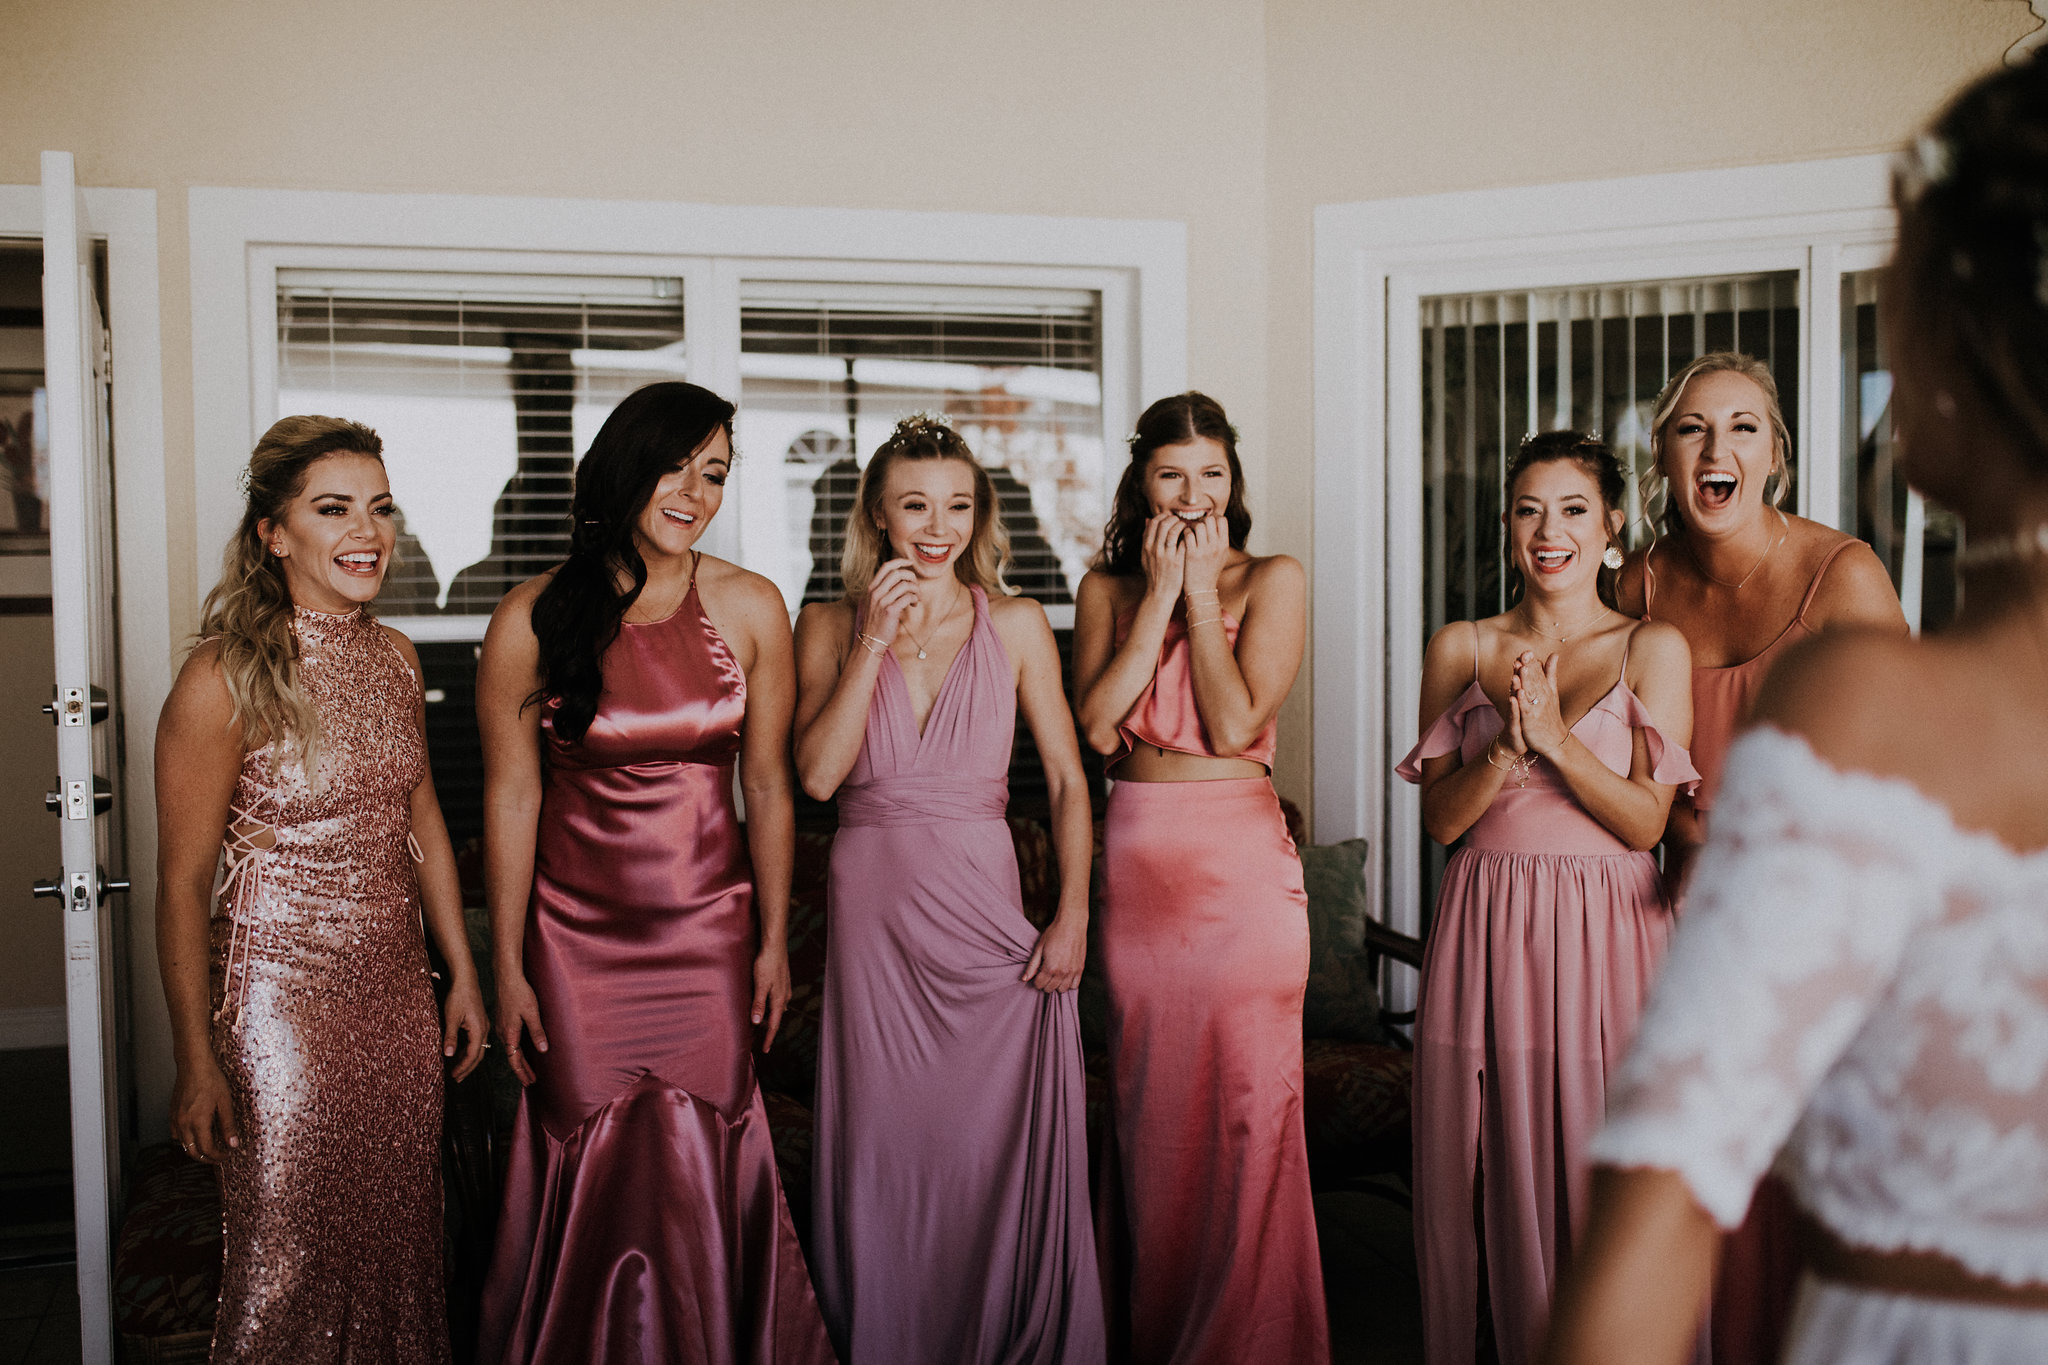 no big deal, just the sweetest bridesmaids first look.